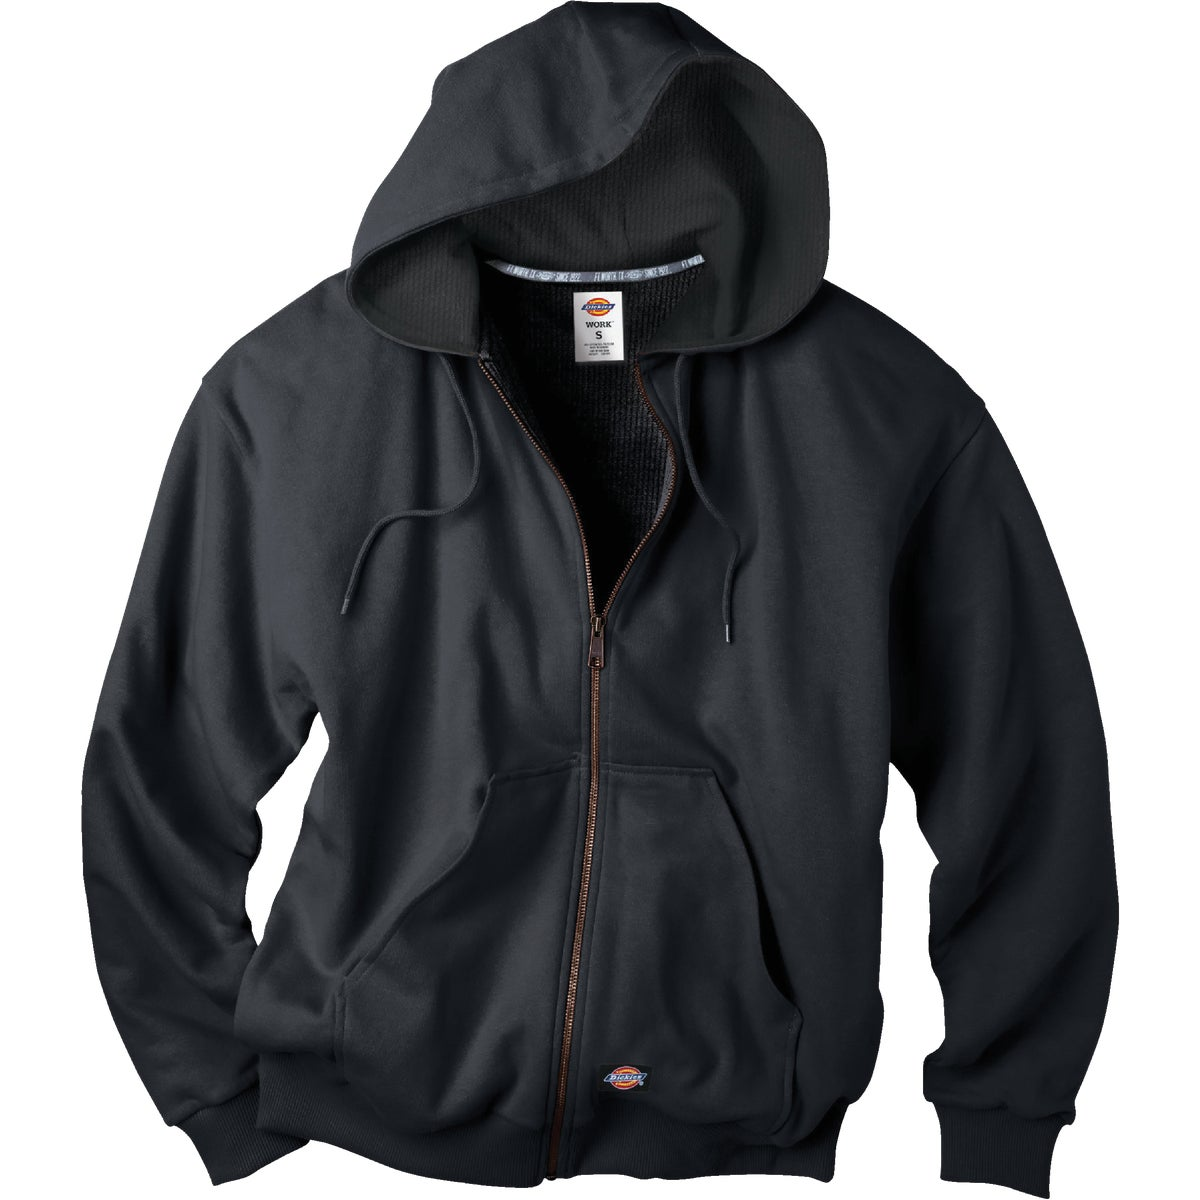 XL BLK HOOD FLC JACKET - TW382BK-XL by Dickies